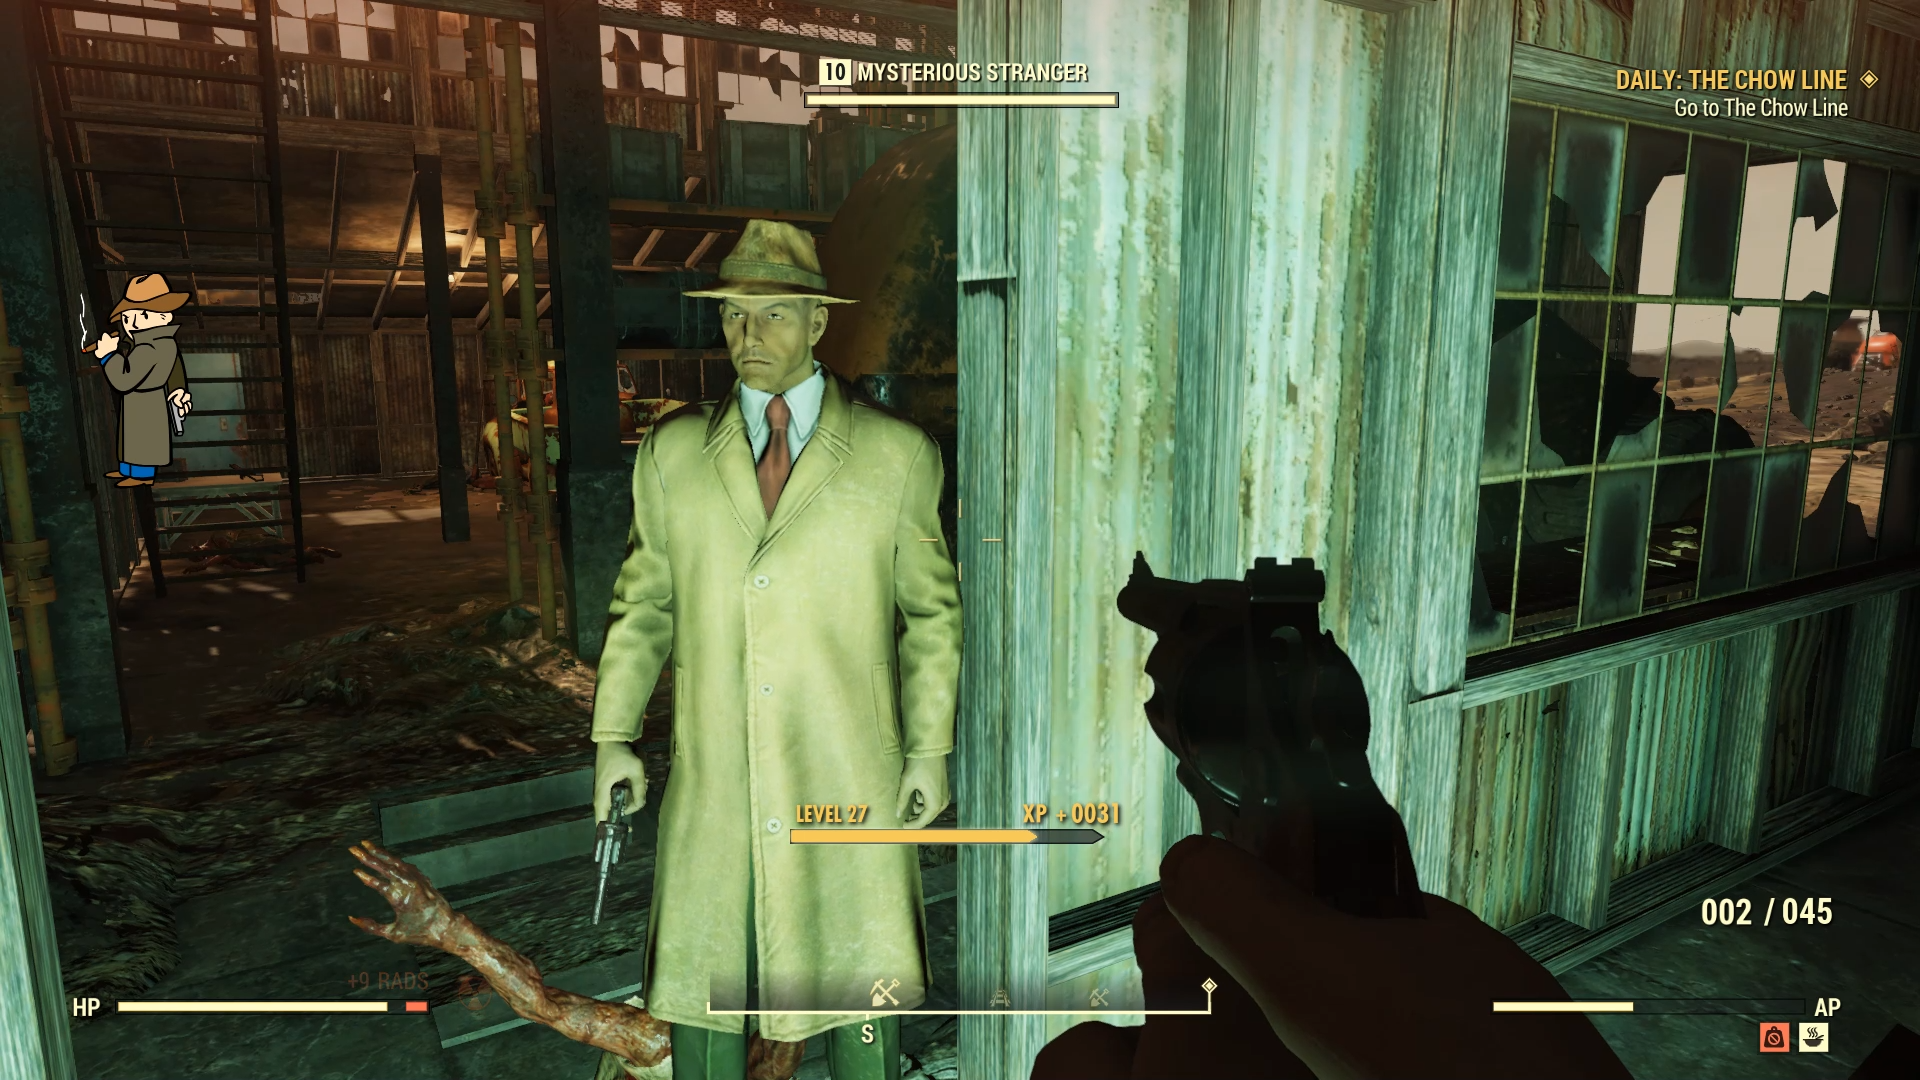 Now I have got the chance to see what Mysterious Stranger